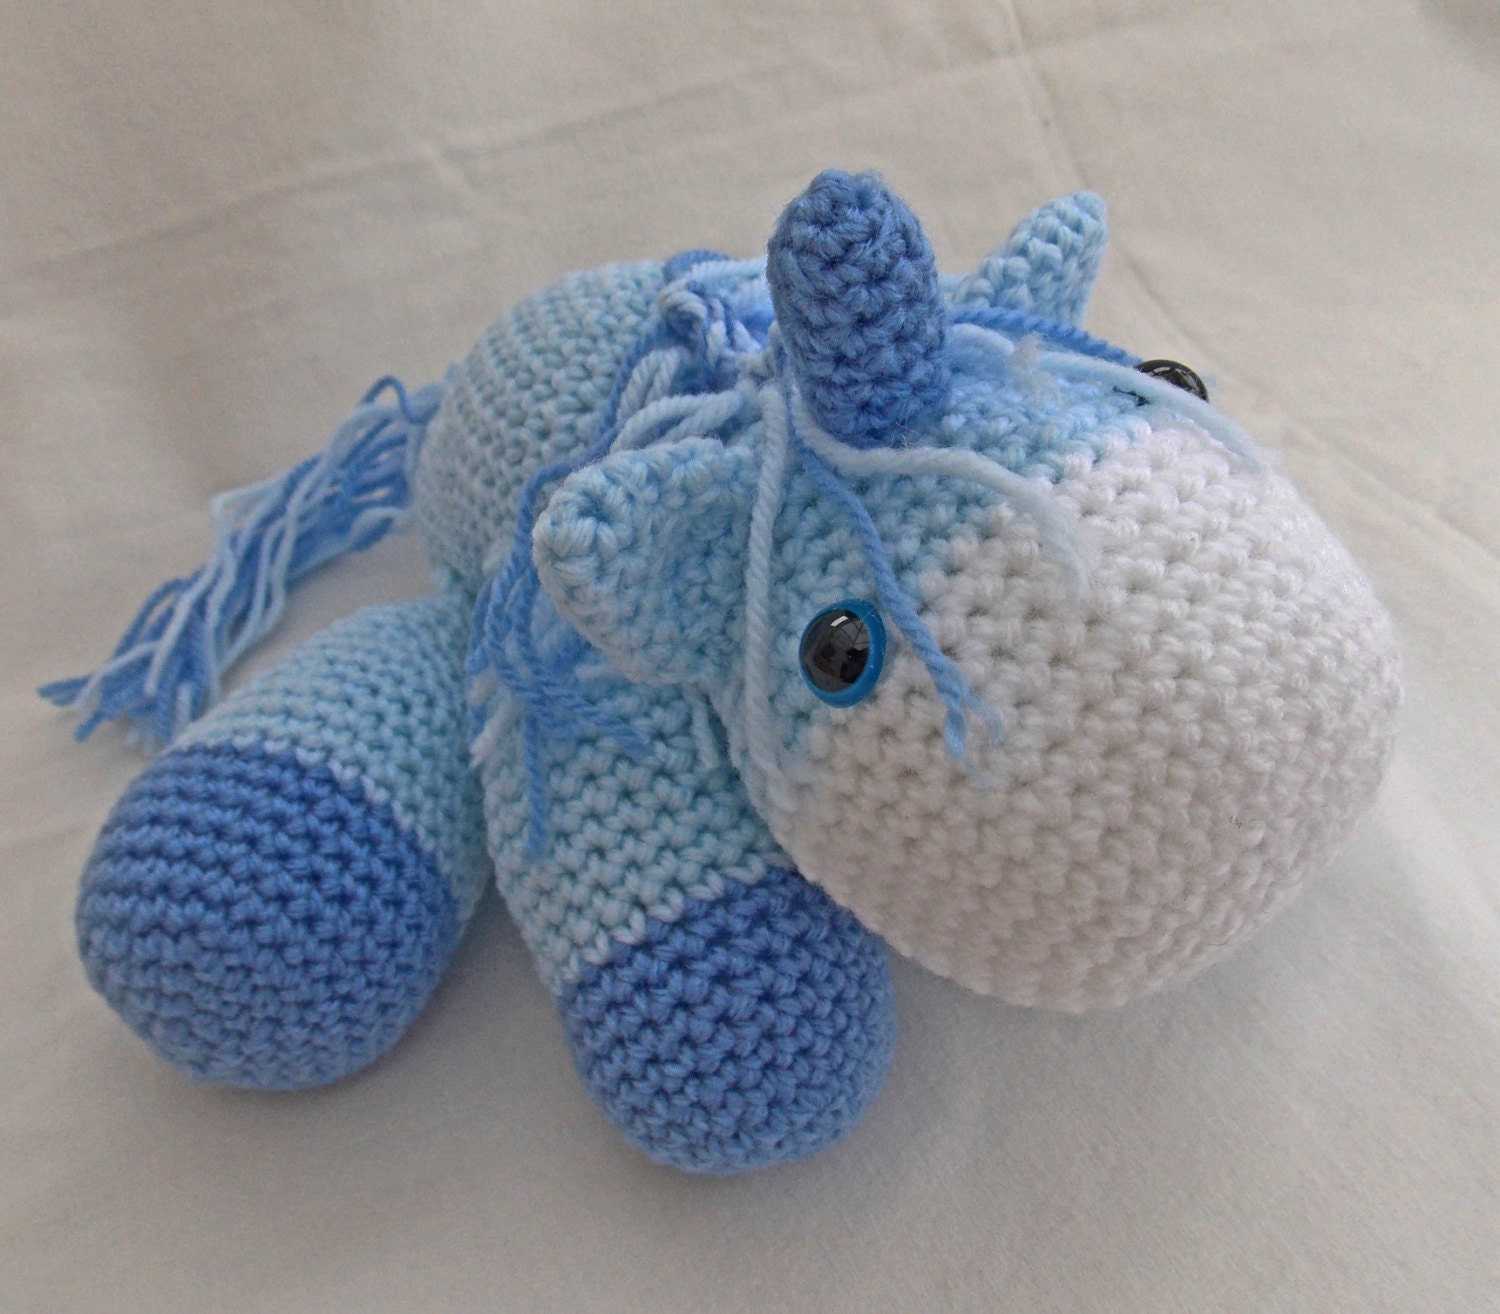 Unicorn Amigurumi Yarn Yard : Crochet Unicorn Amigurumi Unicorn blue new baby by ...